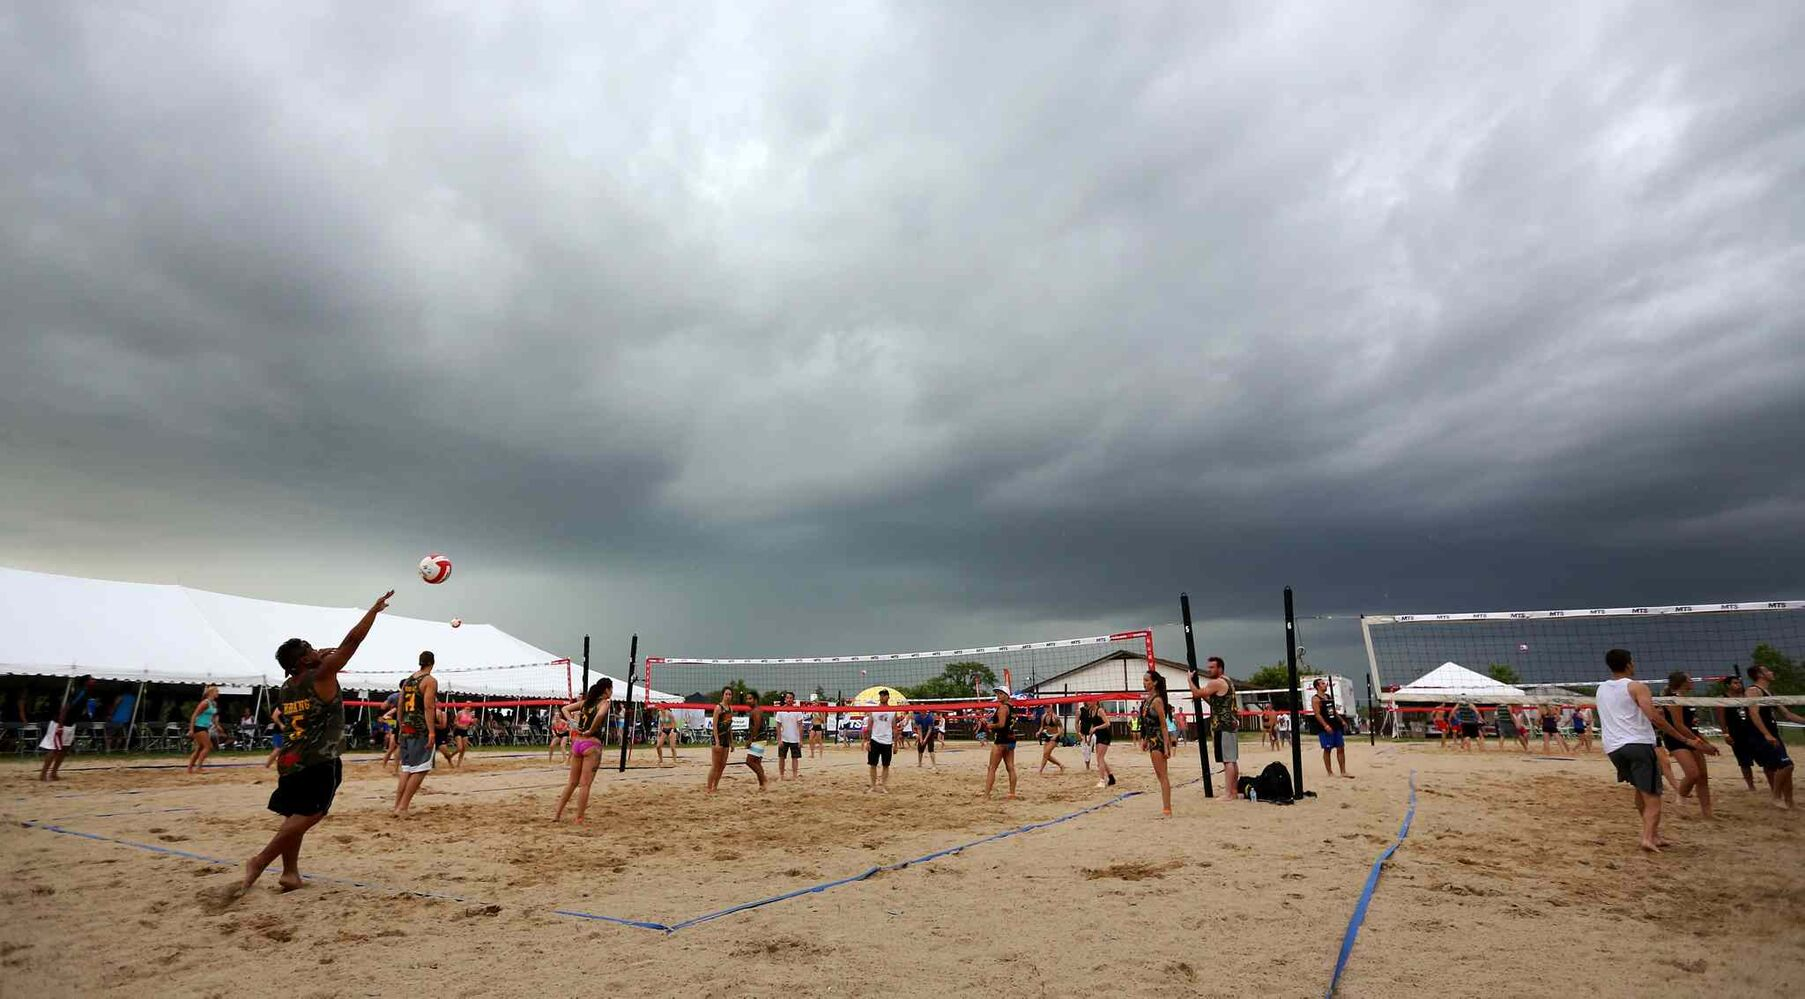 Storm clouds above Super-Spike volleyball tournament at Maple Grove Rugby Park, Friday, July 18, 2014.  (TREVOR HAGAN/WINNIPEG FREE PRESS)